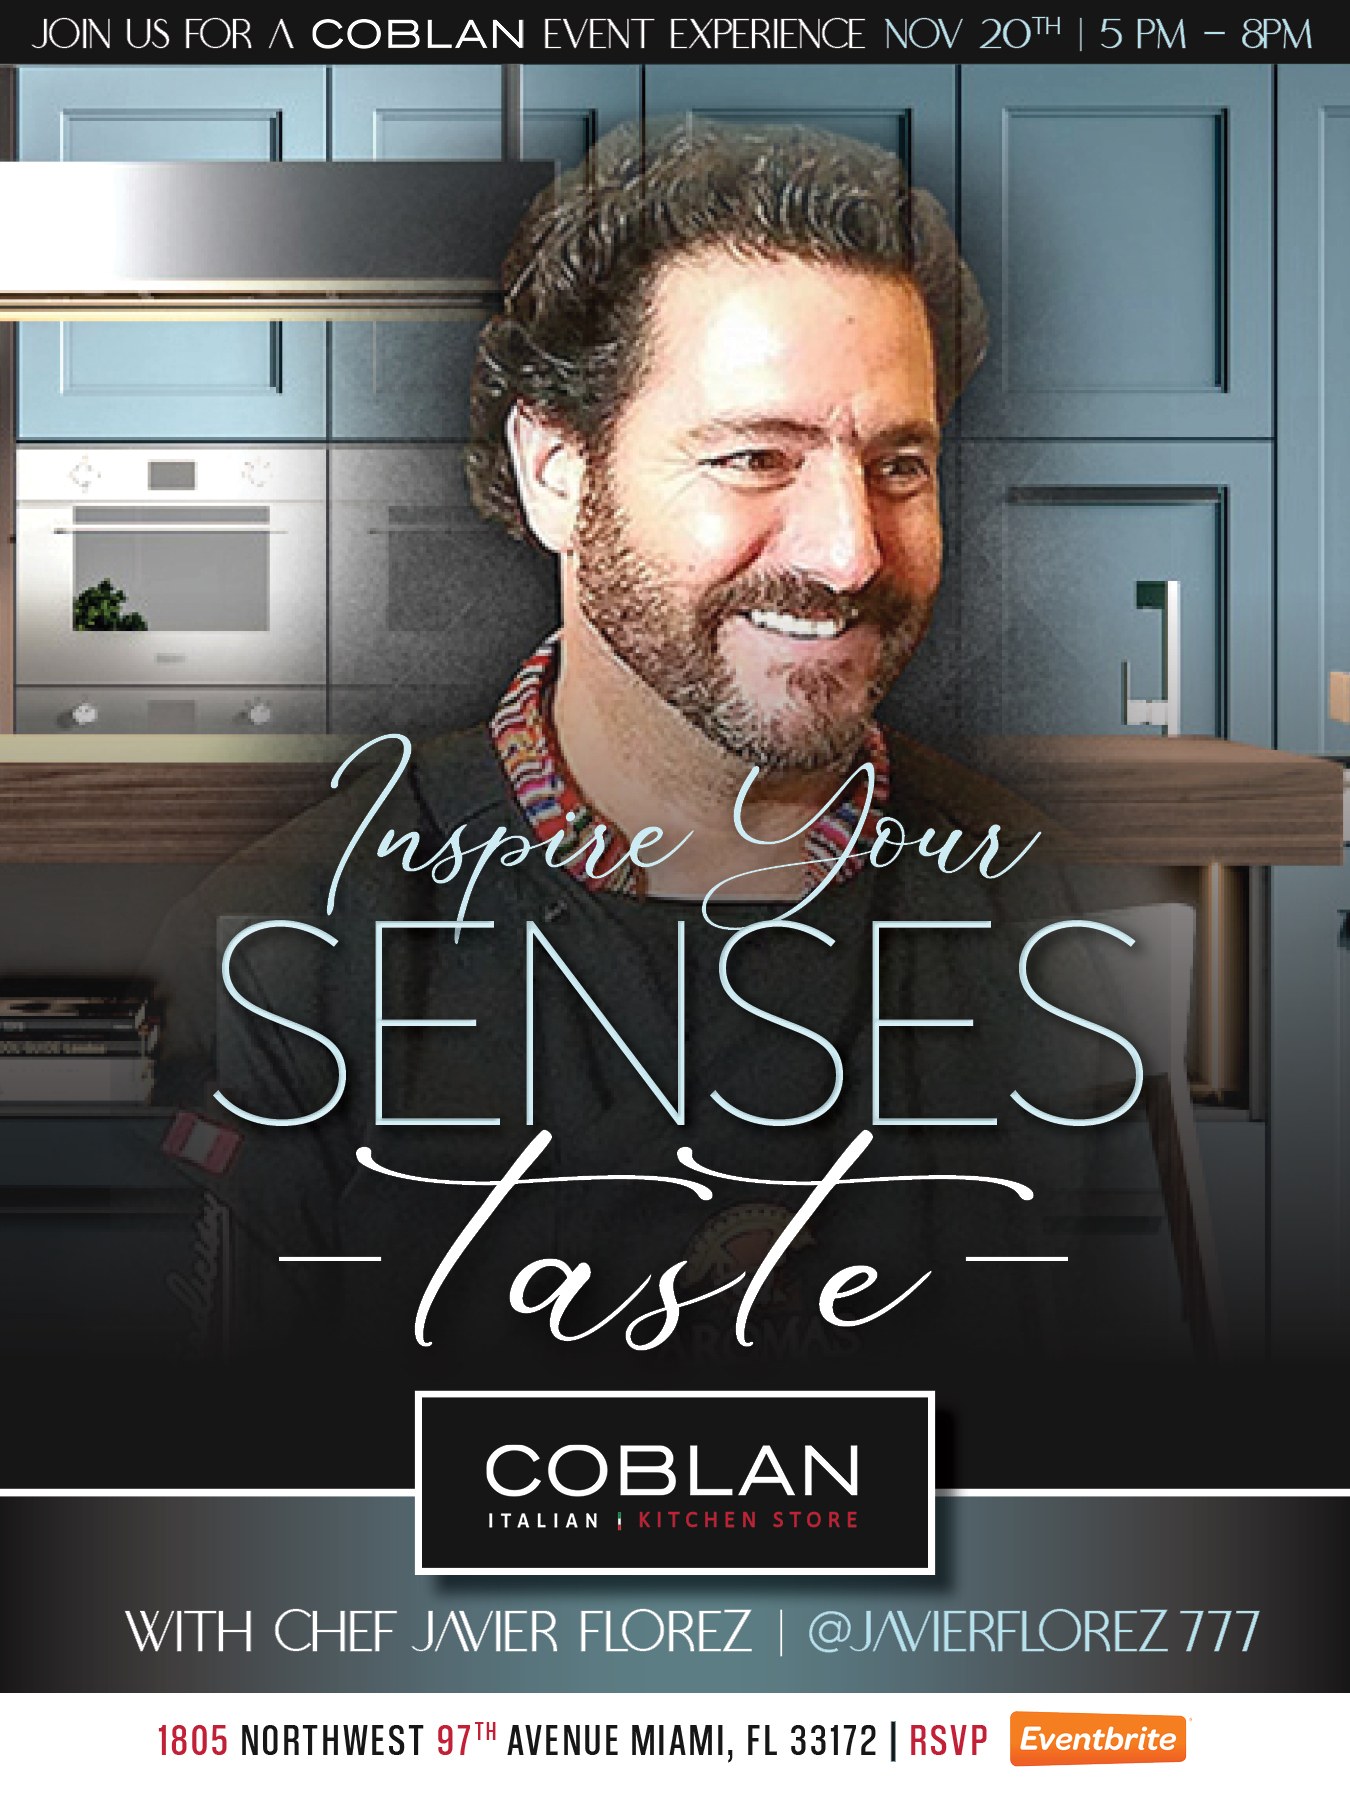 Coblan 5 Senses CHEF